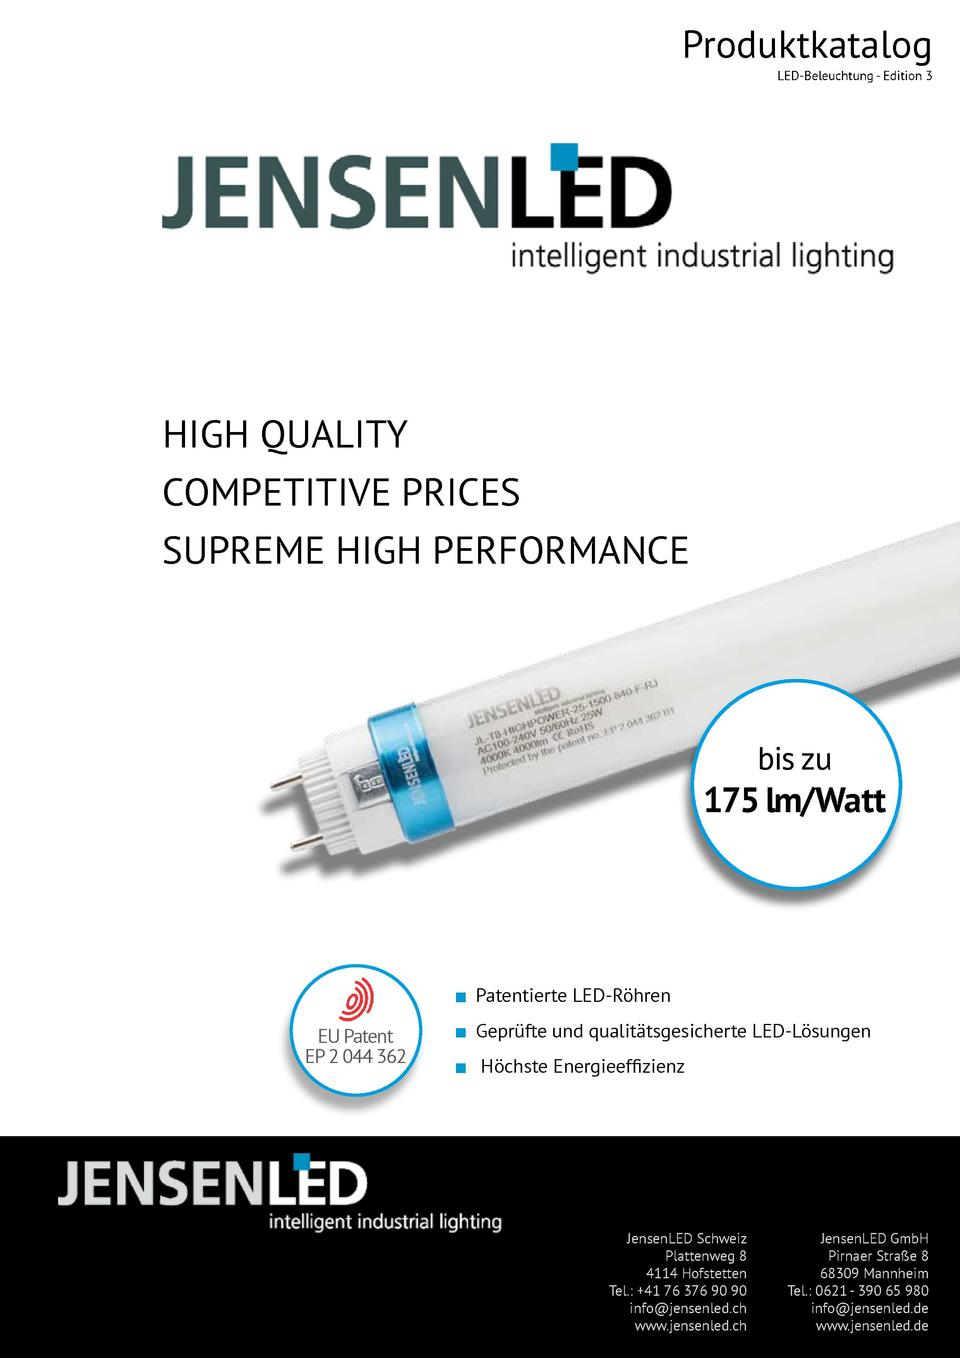 Produktkatalog LED-Beleuchtung - Edition 3  HIGH QUALITY COMPETITIVE PRICES SUPREME HIGH PERFORMANCE  bis zu  175 lm Watt ...